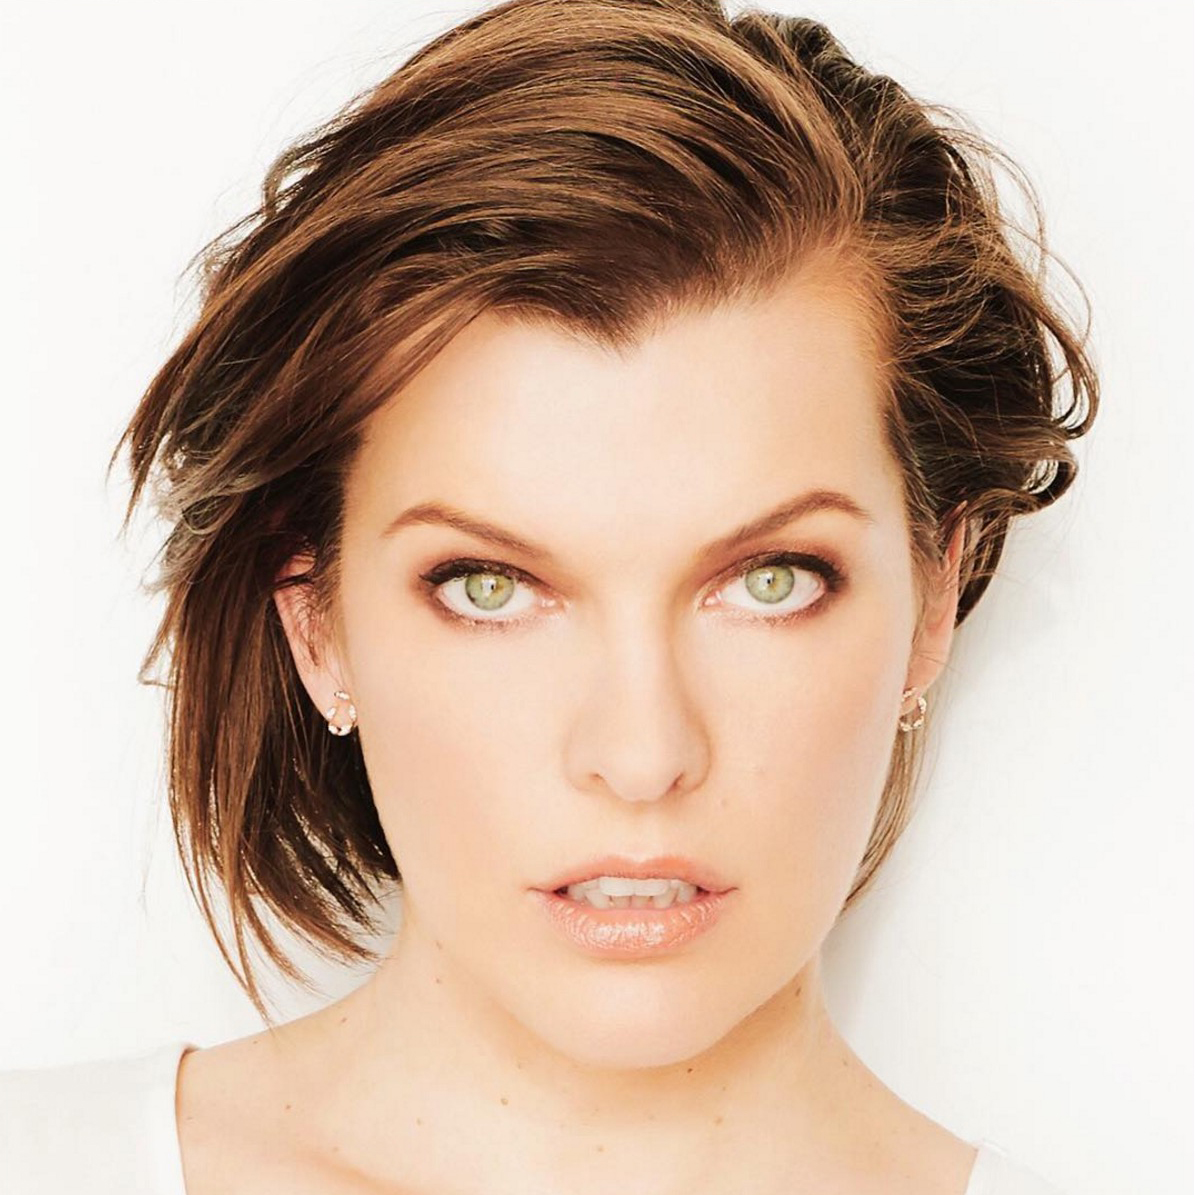 The Official Milla Jovovich Website